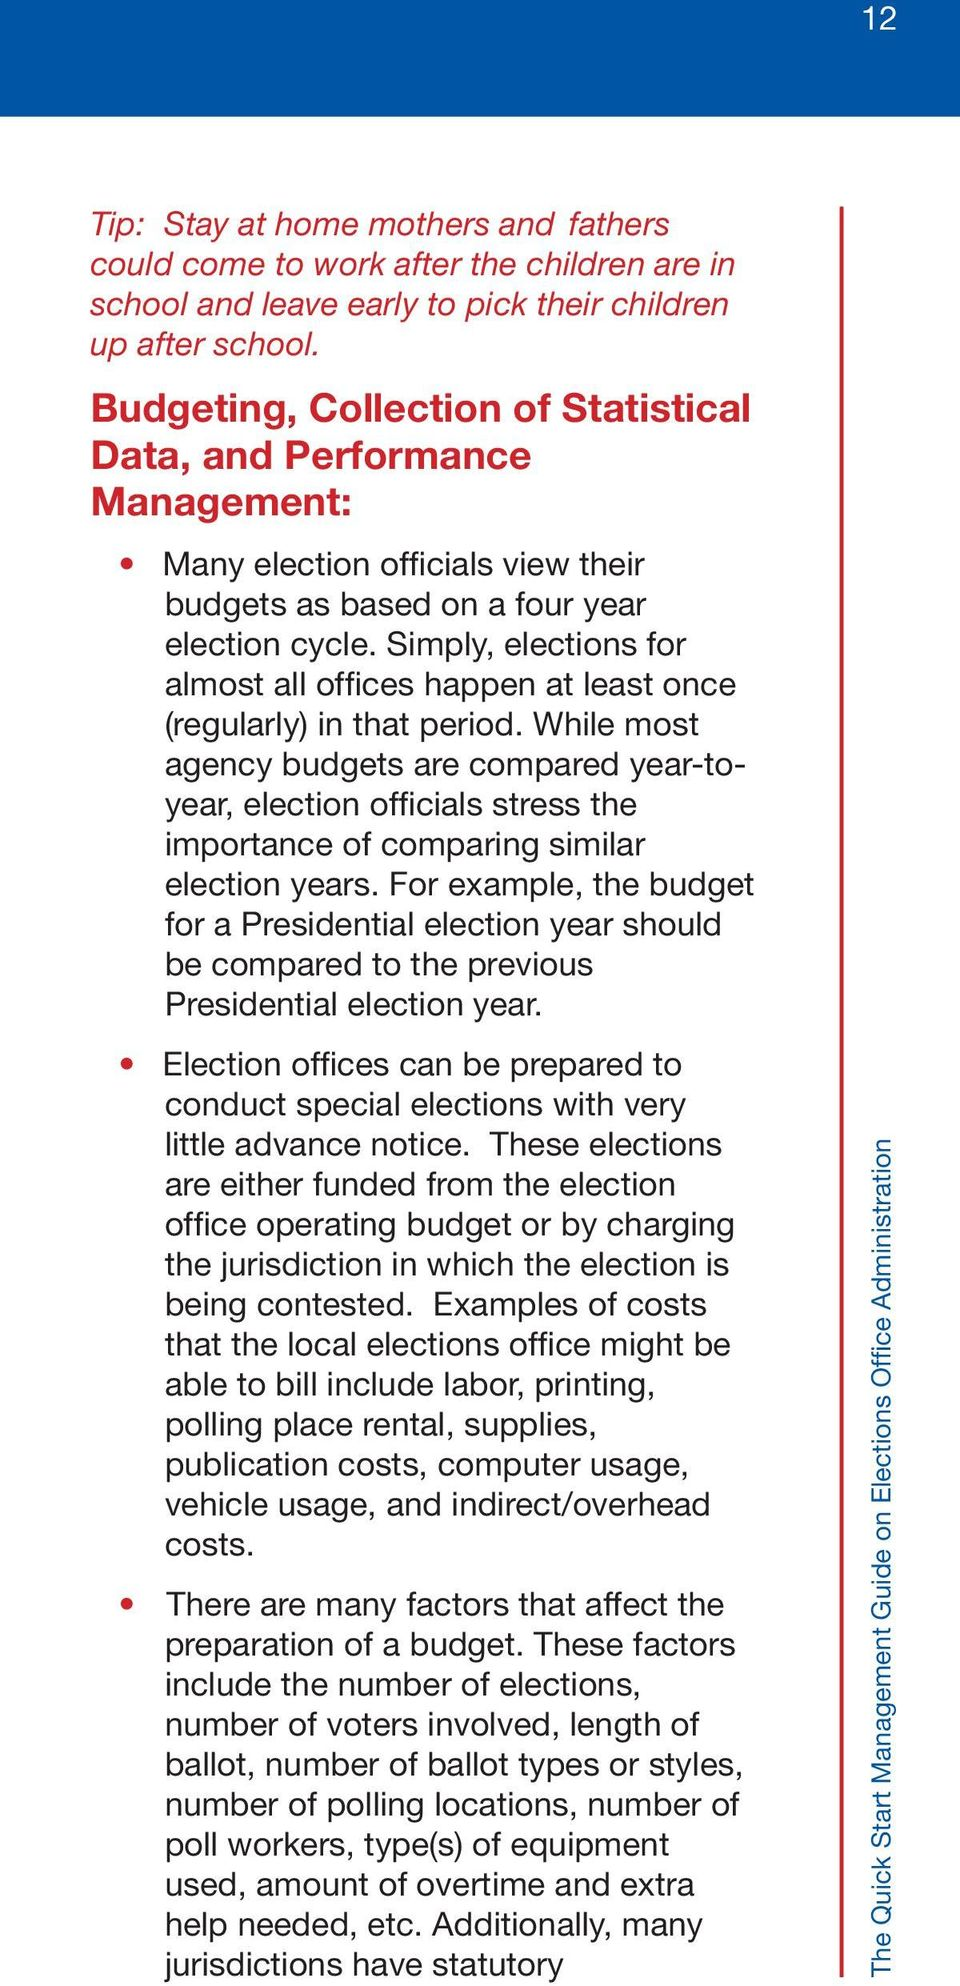 Simply, elections for almost all offices happen at least once (regularly) in that period.